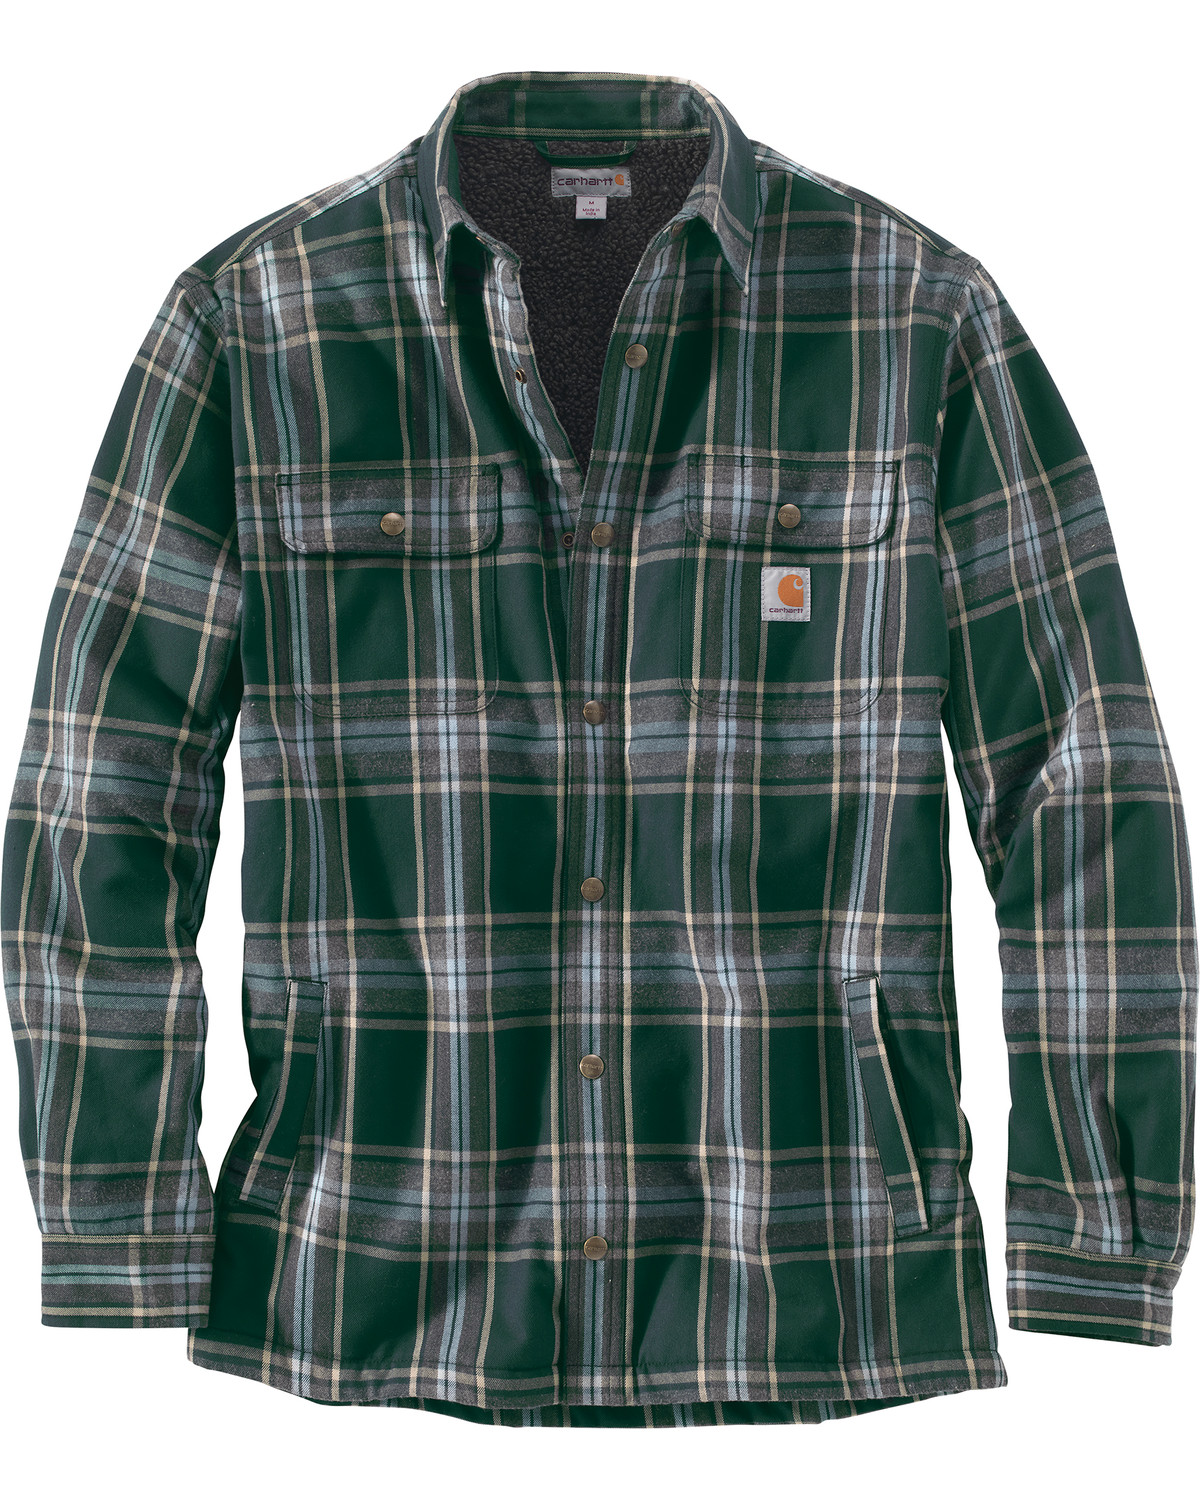 e9759c316 Carhartt Men s Hubbard Sherpa-Lined Shirt Jacket - Big